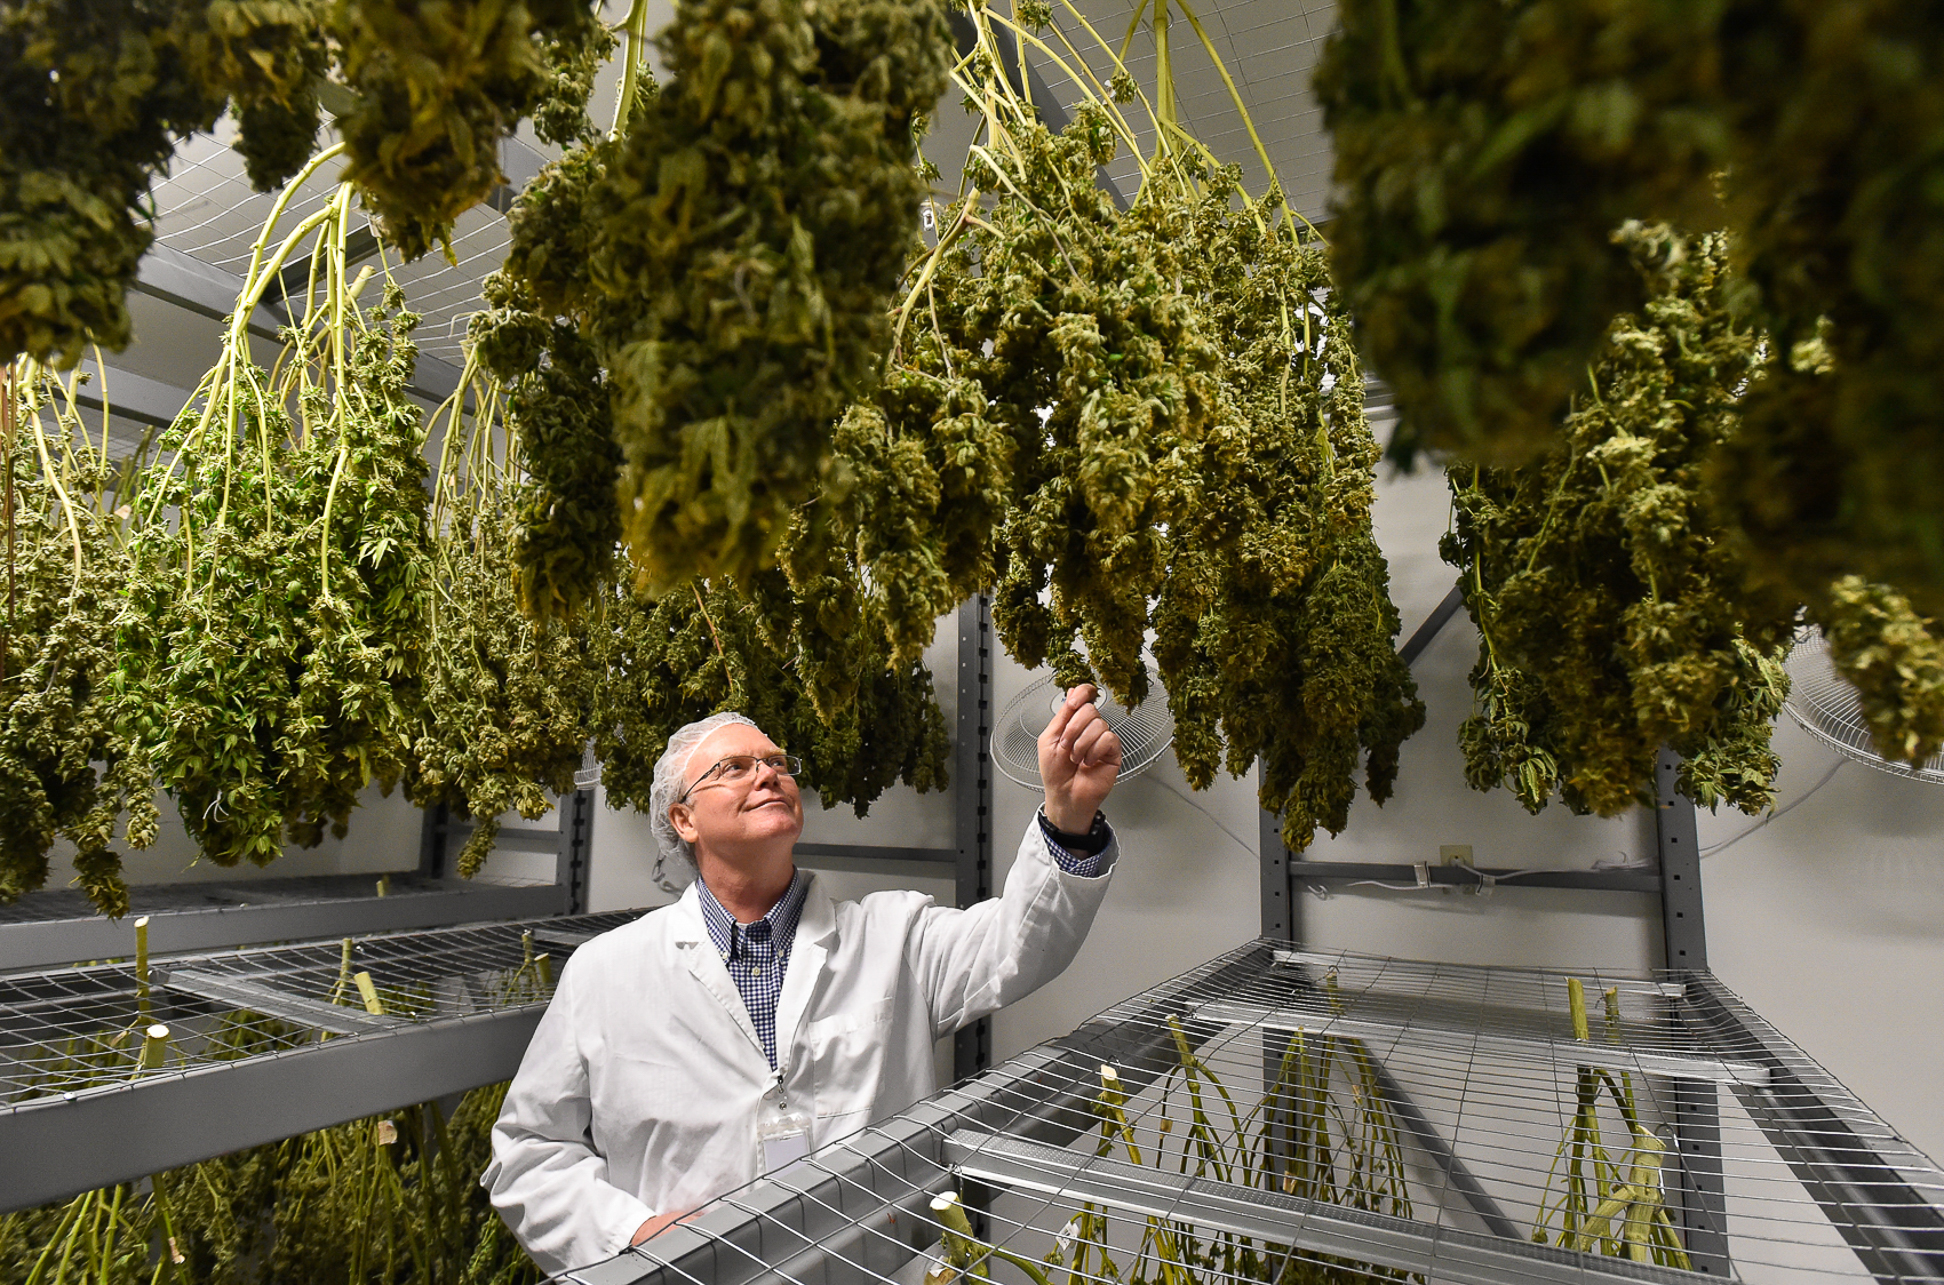 Nathaniel Averill, executive director and co-owner, views some of the drying cannabis inside their drying room at Healthy Pharms medical marijuana facility in Georgetown, Friday, March 24, 2017. [Wicked Local Staff Photo / David Sokol]